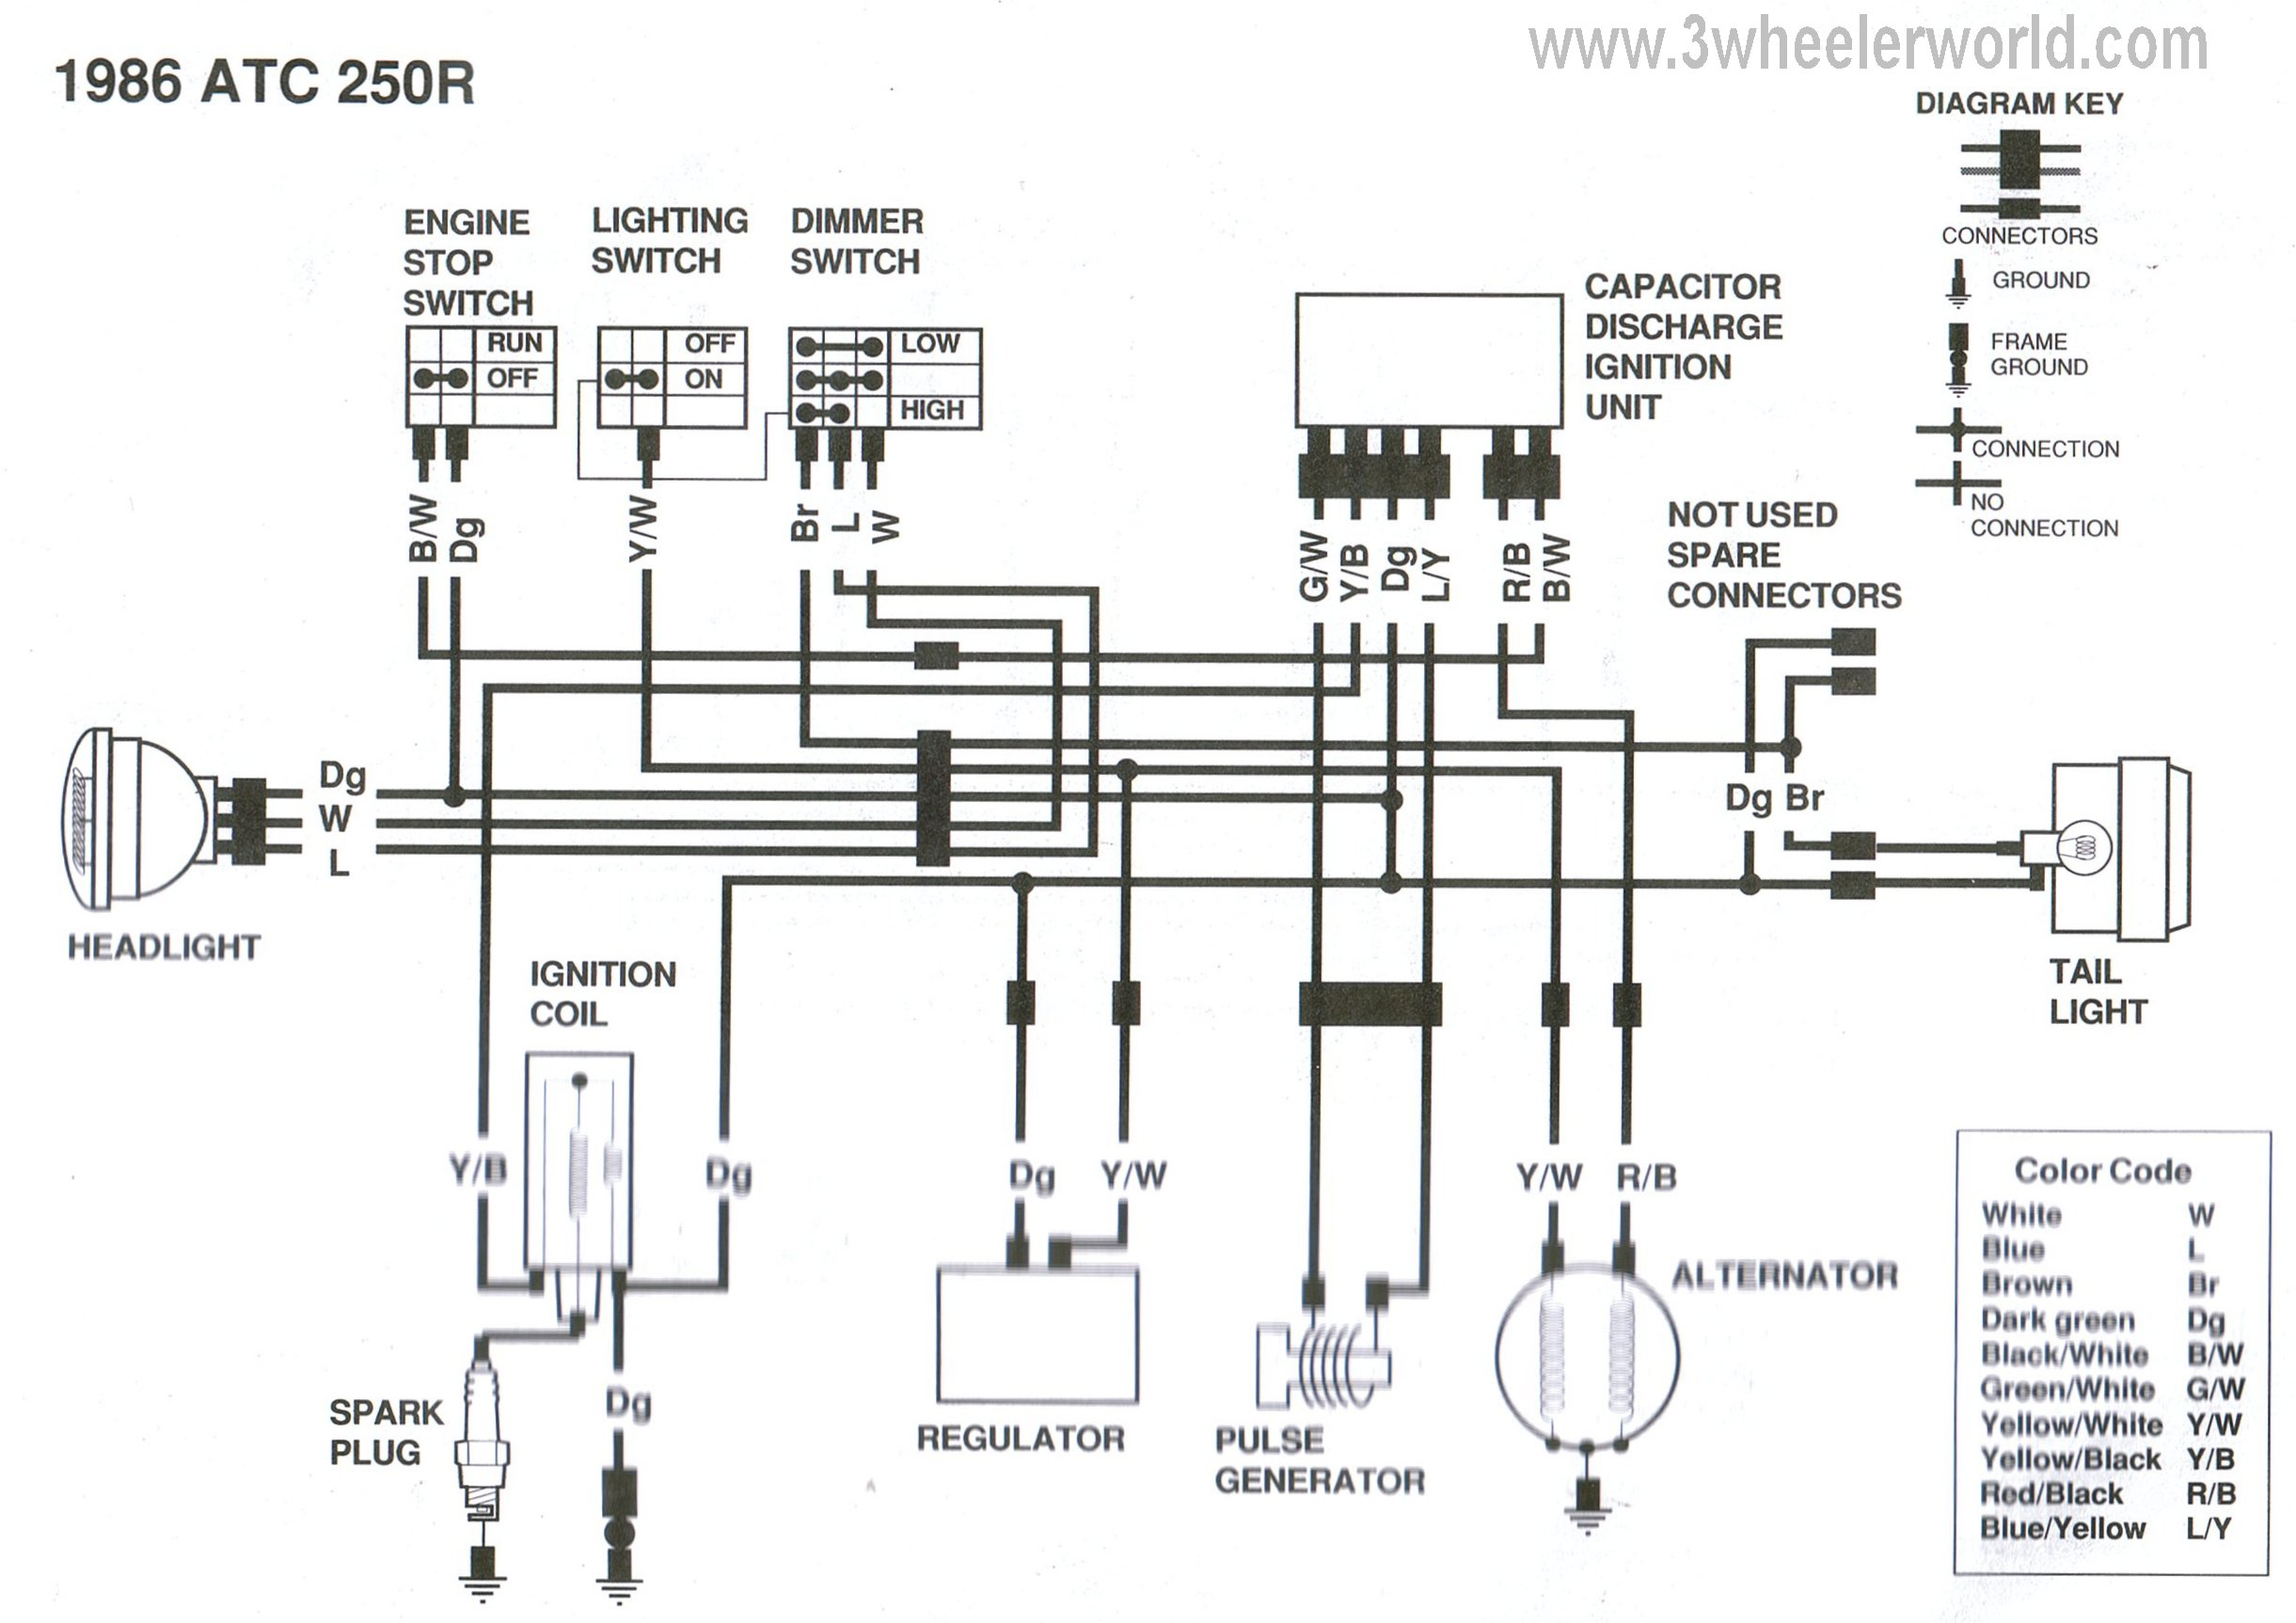 medium resolution of headlight wiring diagram atc70 30 wiring diagram images wiring headlight wiring upgrade diagram headlight wiring diagram